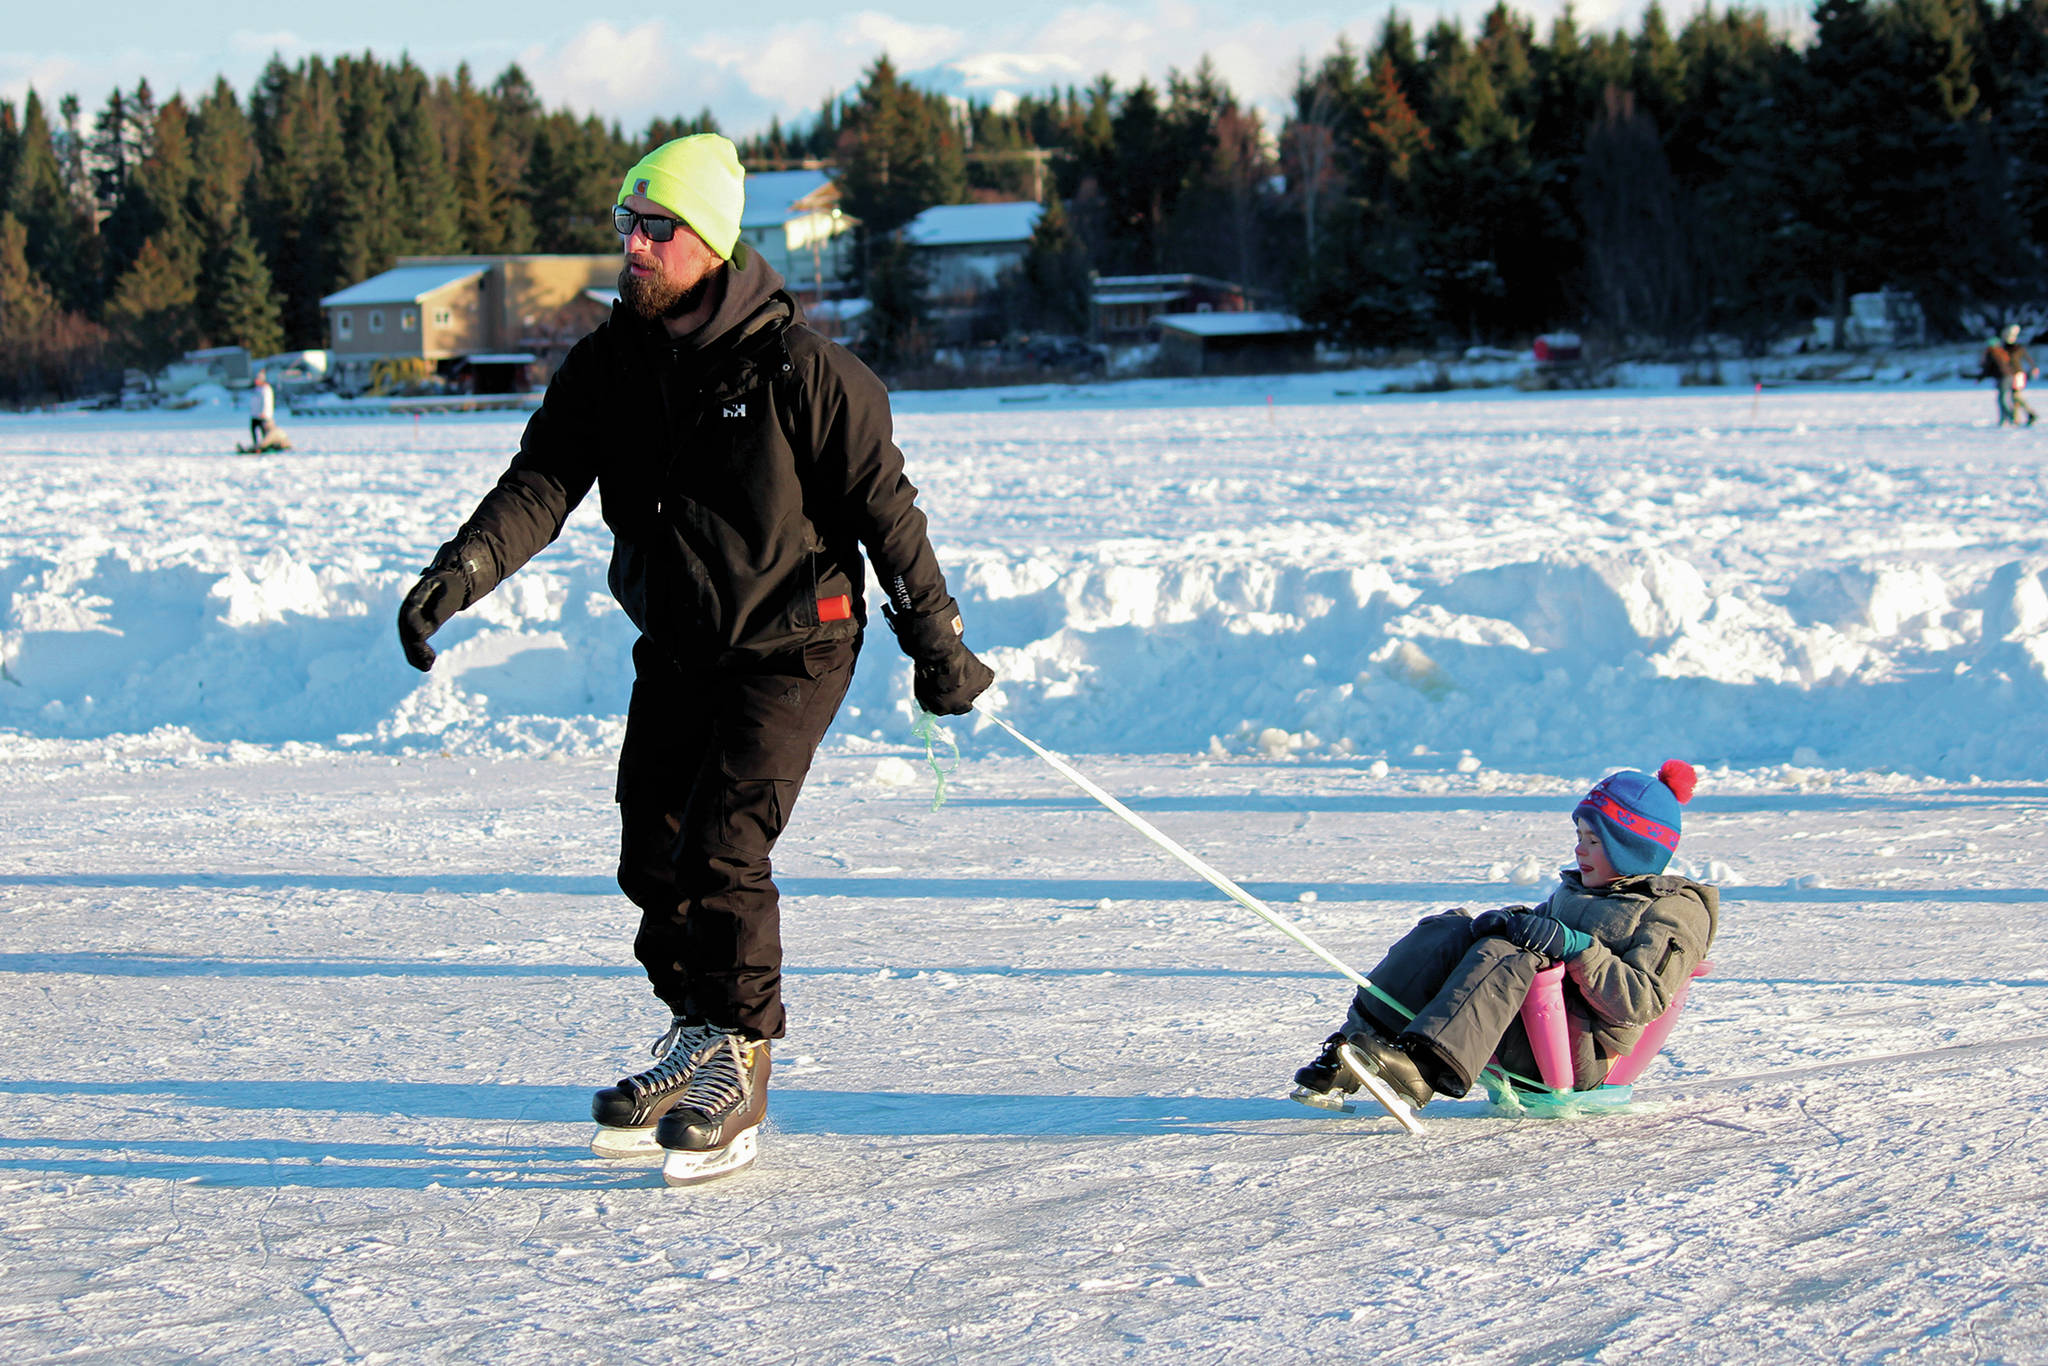 Phil Basargin 5-year-old Maxim Basargin around the ice Saturday, Feb. 6, 2021 during the Skate the Lake event on Beluga Lake in Homer, Alaska. The free skating event was hosted for the community by the Homer Hockey Association. (Photo by Megan Pacer/Homer News)